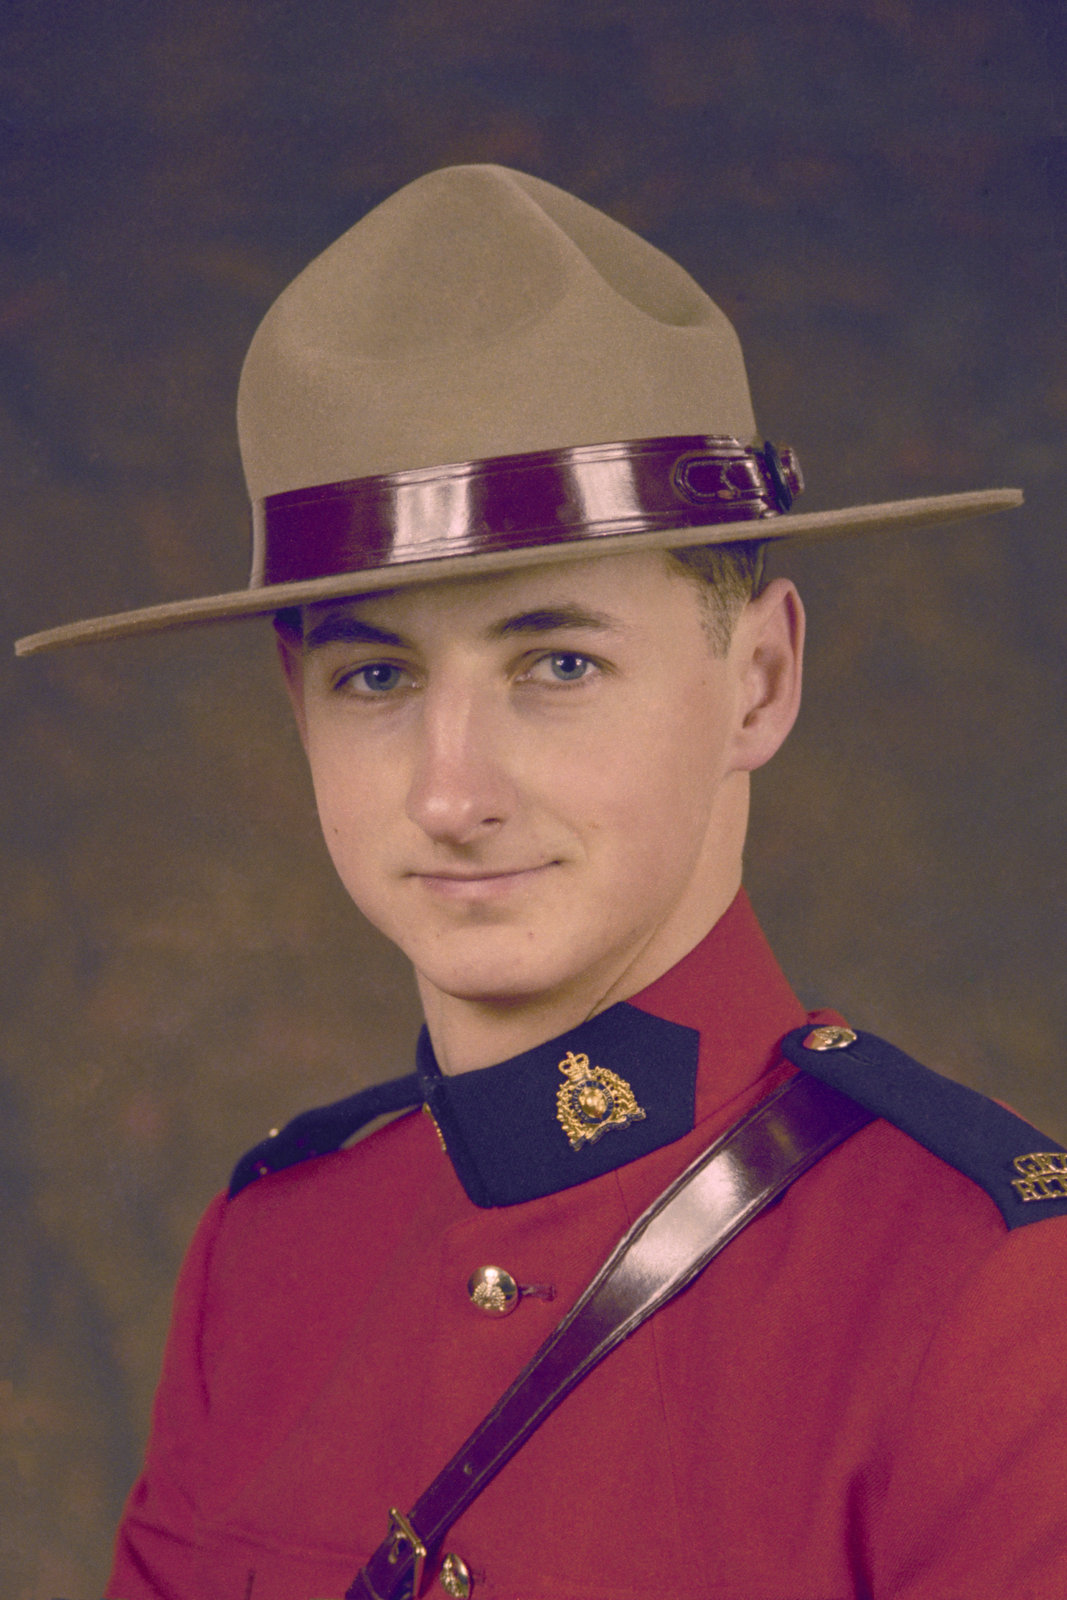 Constable Thomas James Agar – © Her Majesty the Queen in Right of Canada as represented by the Royal Canadian Mounted Police